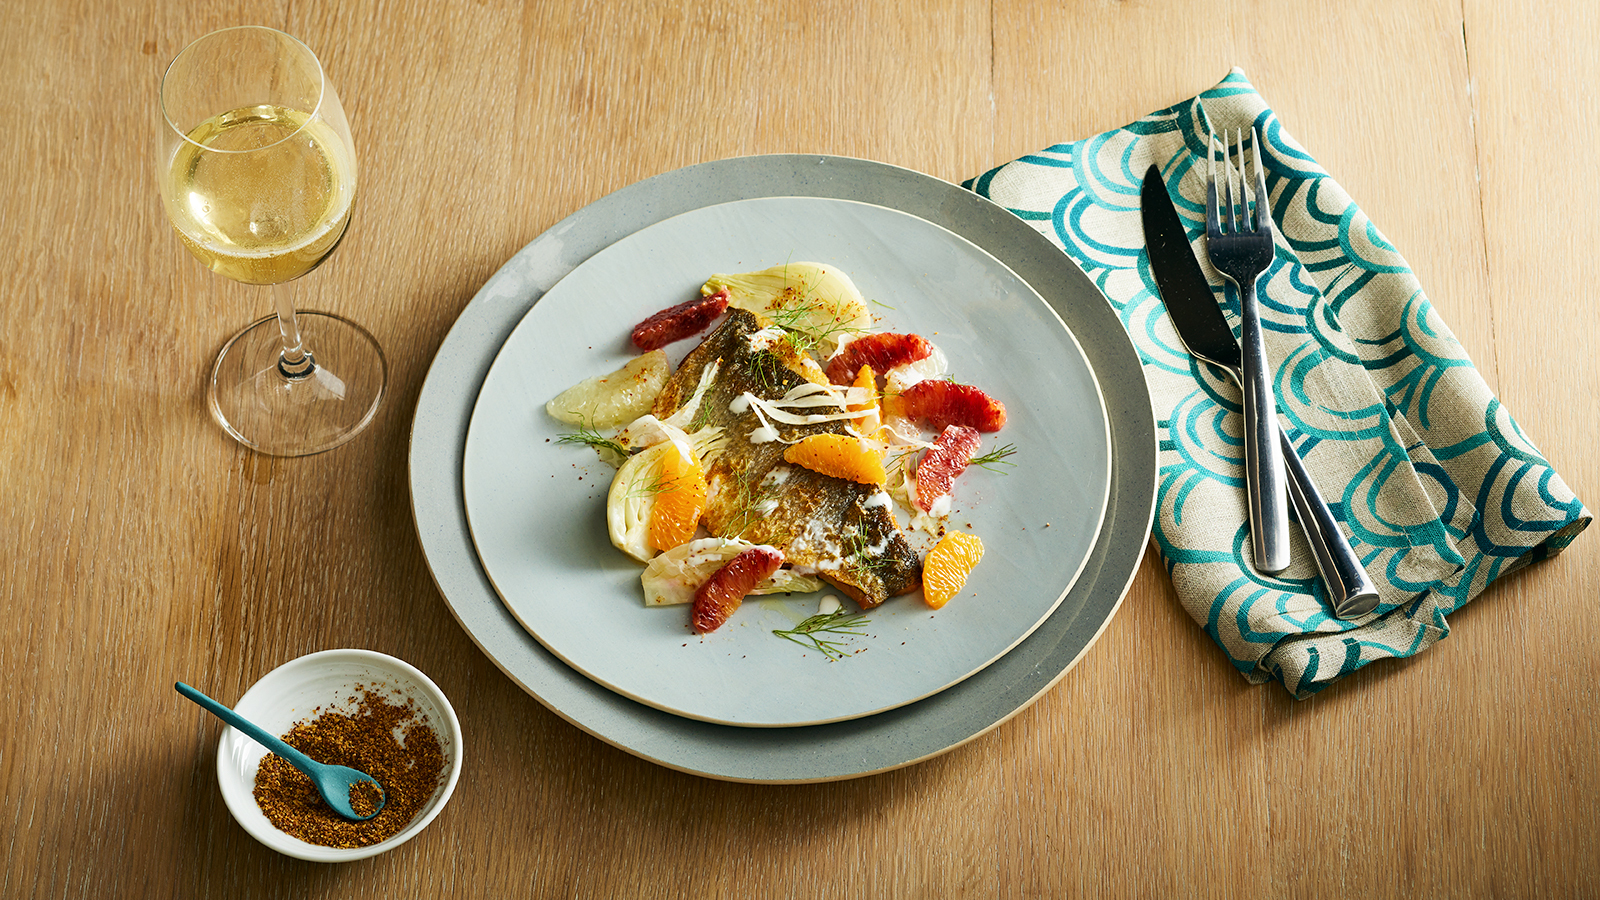 Perfect Match Recipe: Seared Branzino With Winter Citrus, Fennel & Yogurt photo